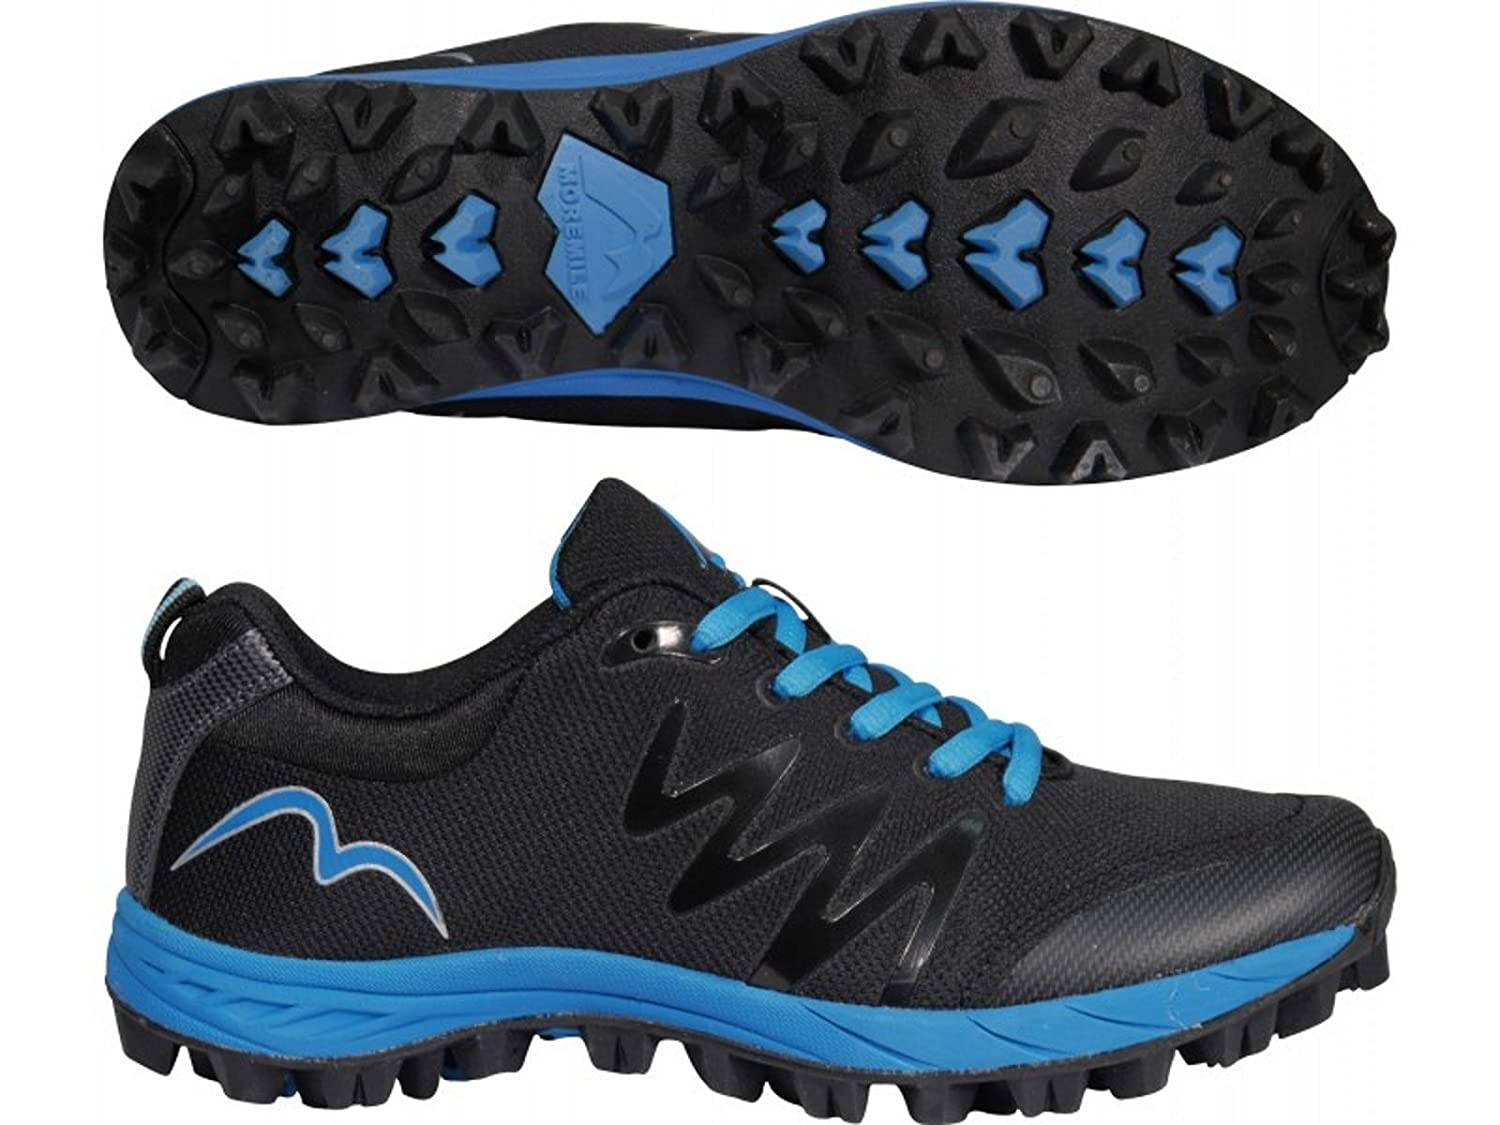 More Mile Cheviot 3 Ladies Off Road Trail Running Shoes: Amazon.co.uk:  Sports & Outdoors